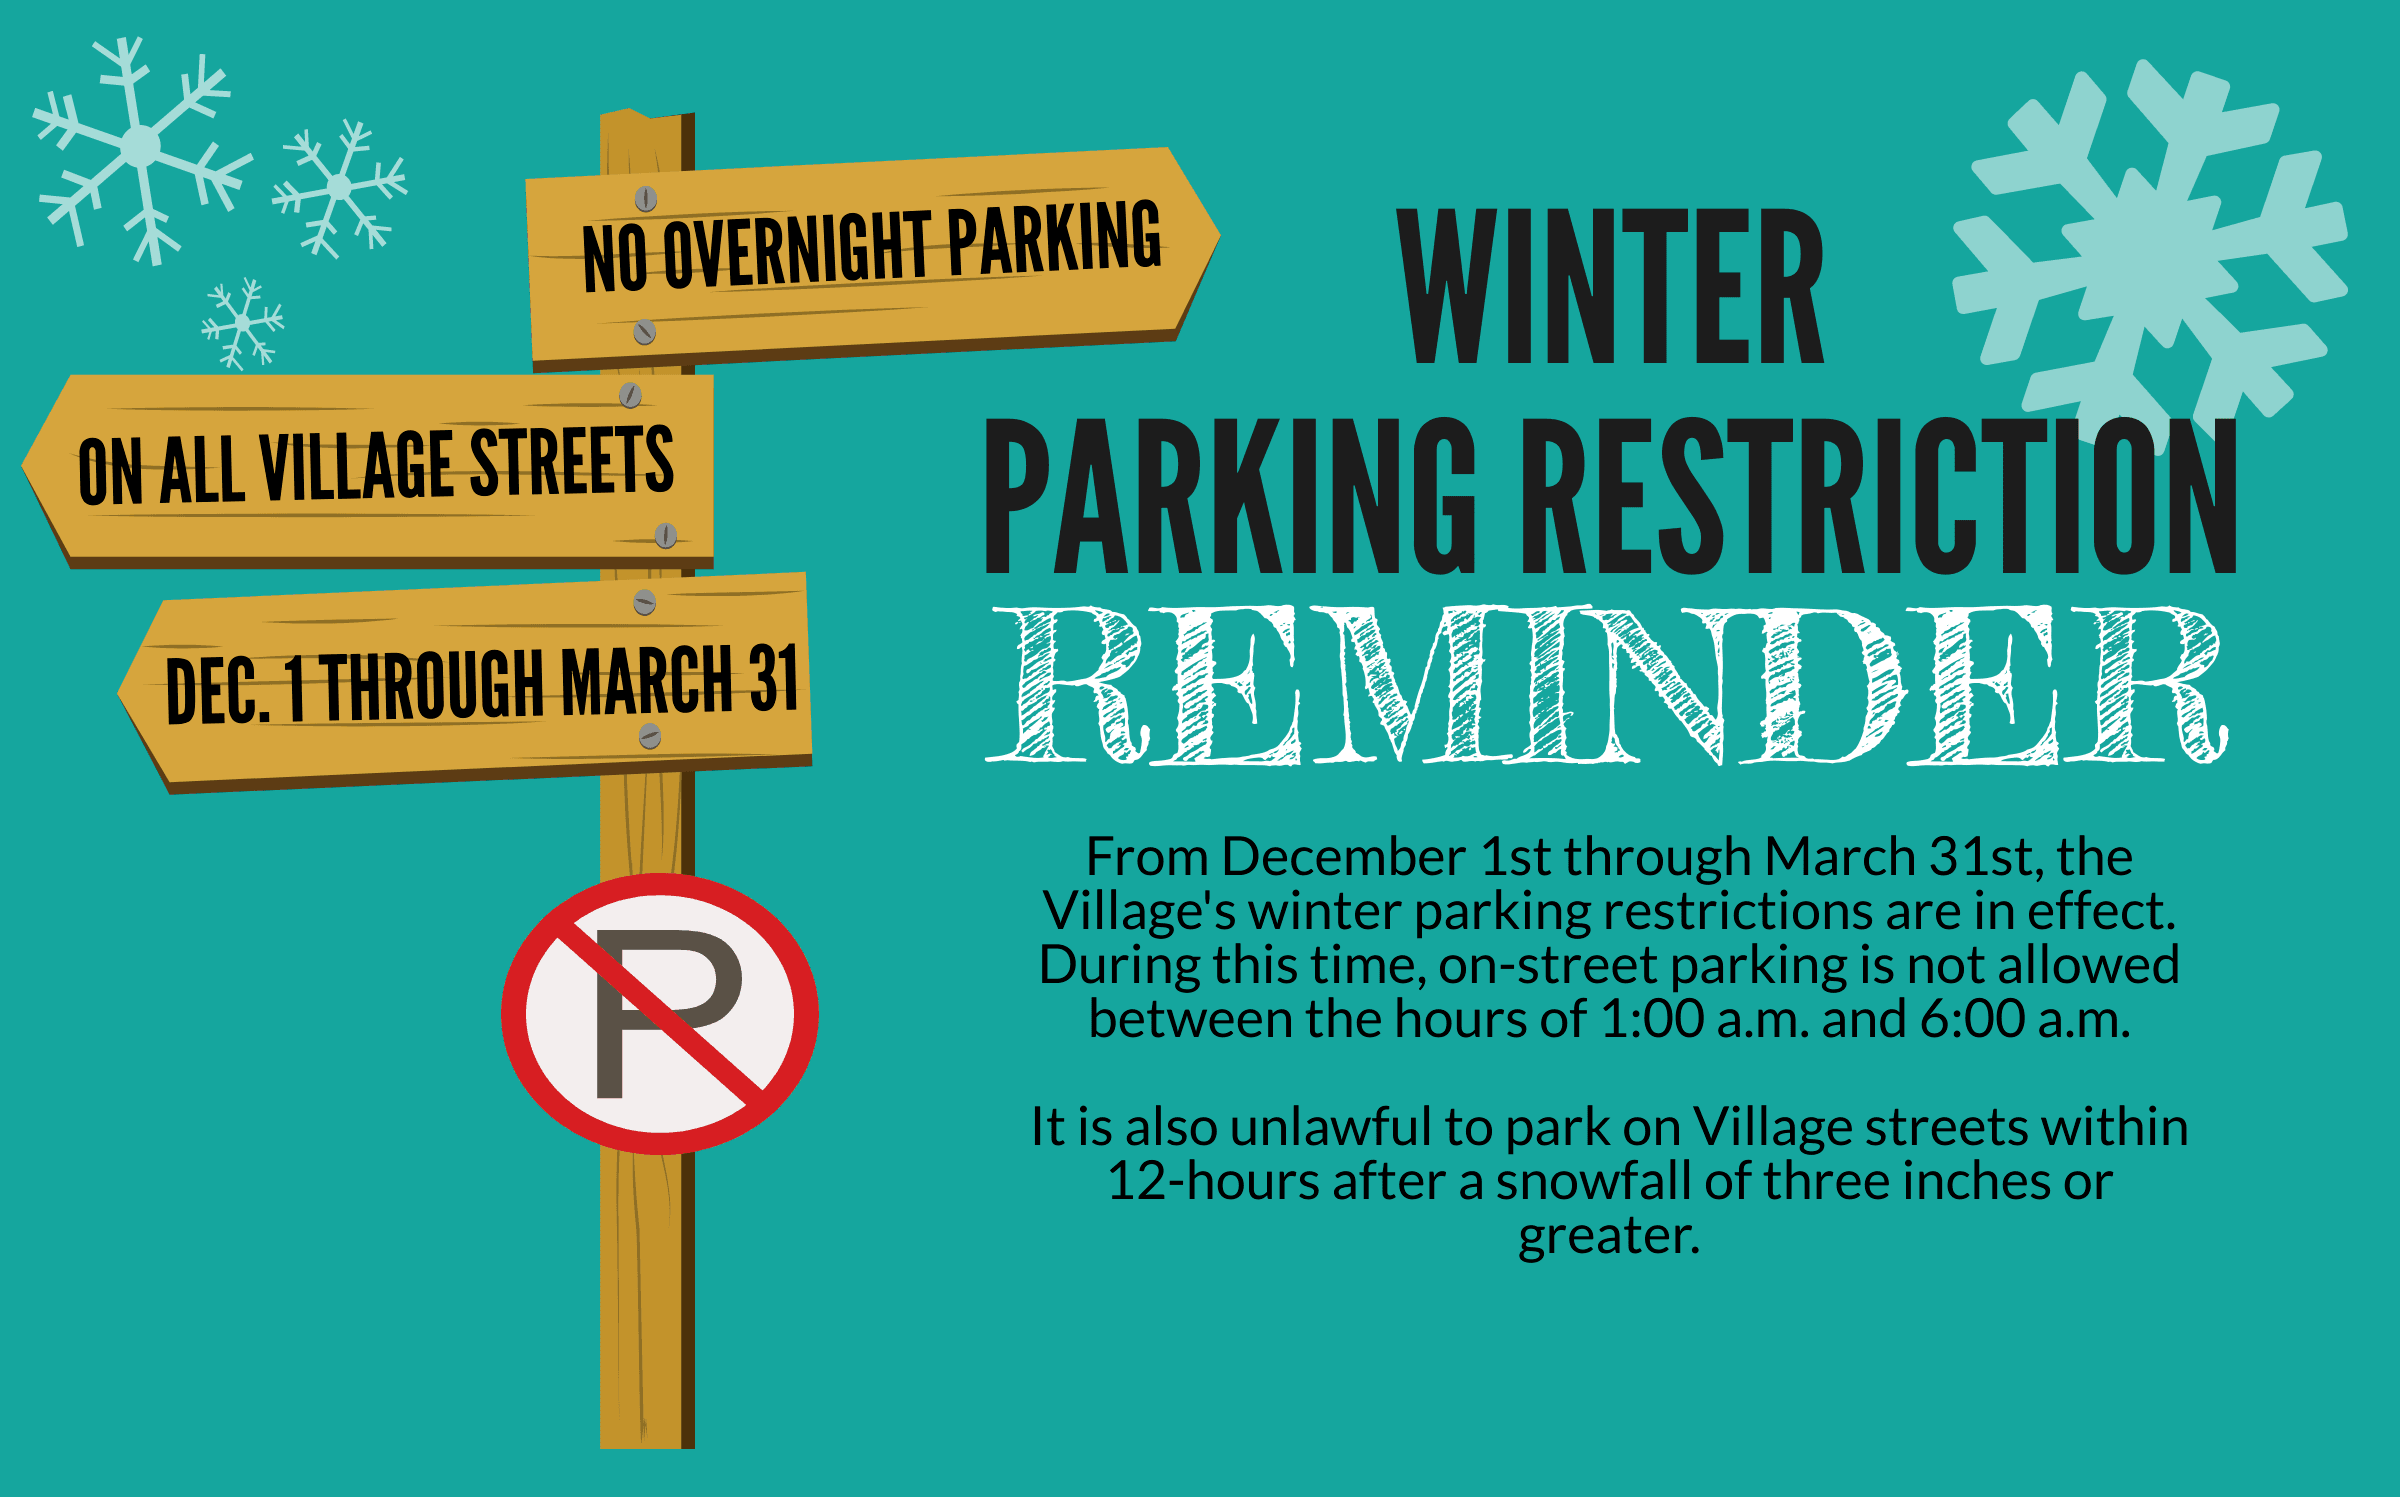 Winter Parking Restriction 10.18.19